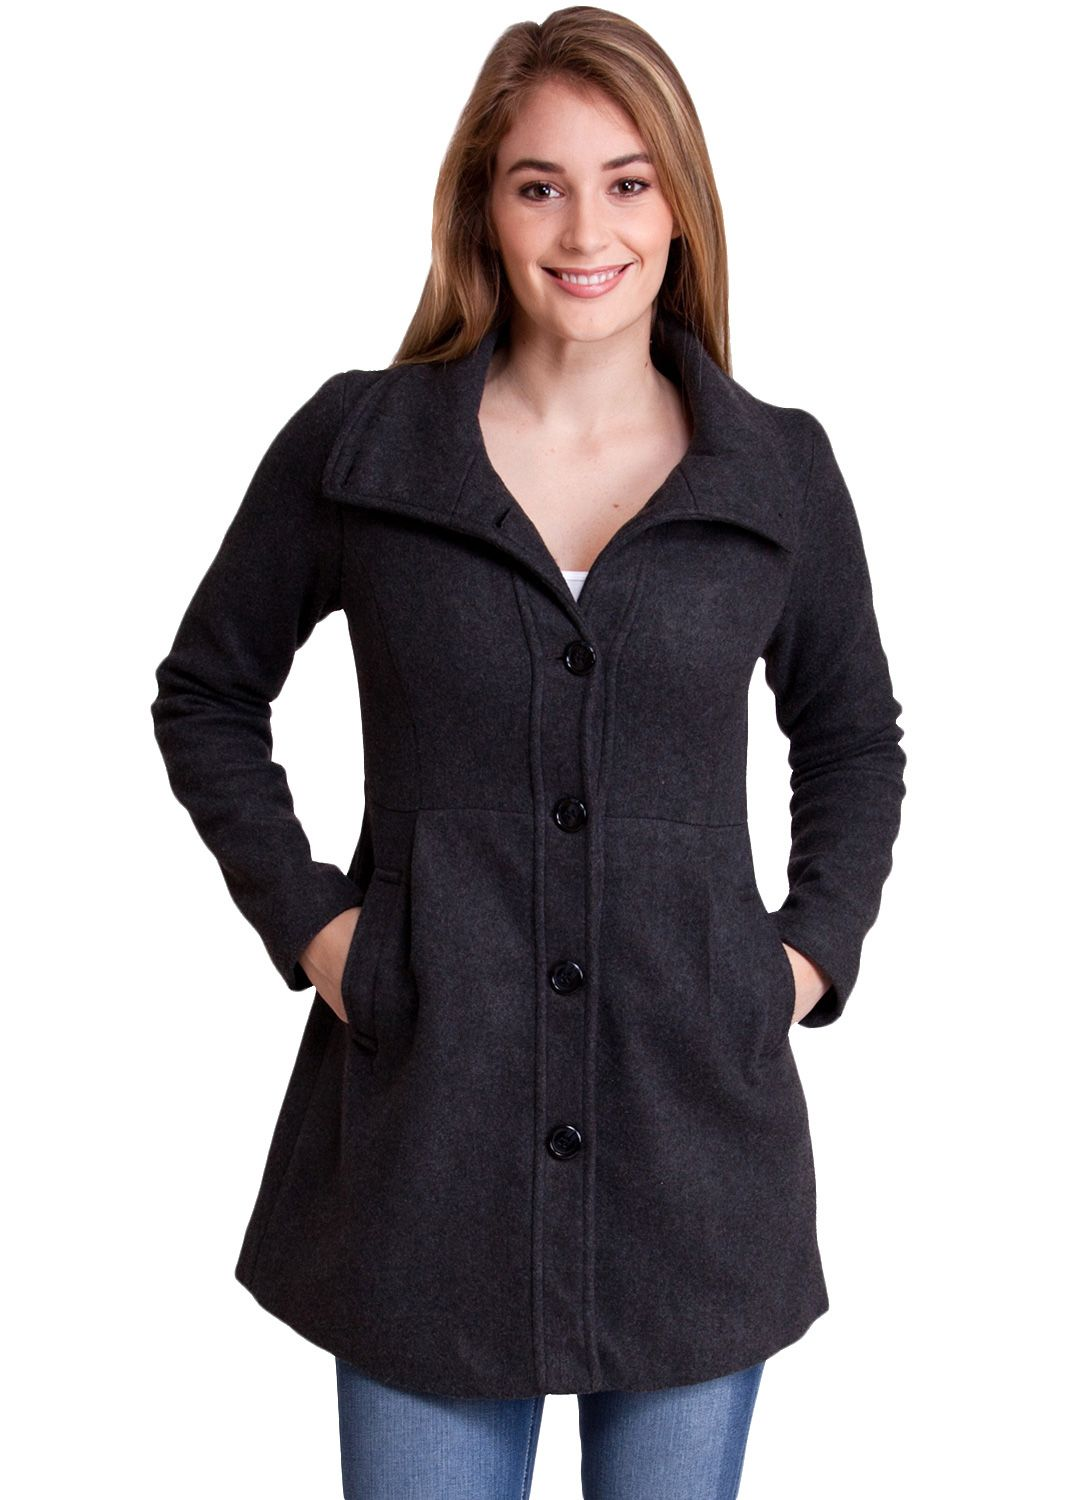 Collared Five Button Winter Jacket J30524CH, clothing, clothes, womens clothing, jeans, tops, womens dress